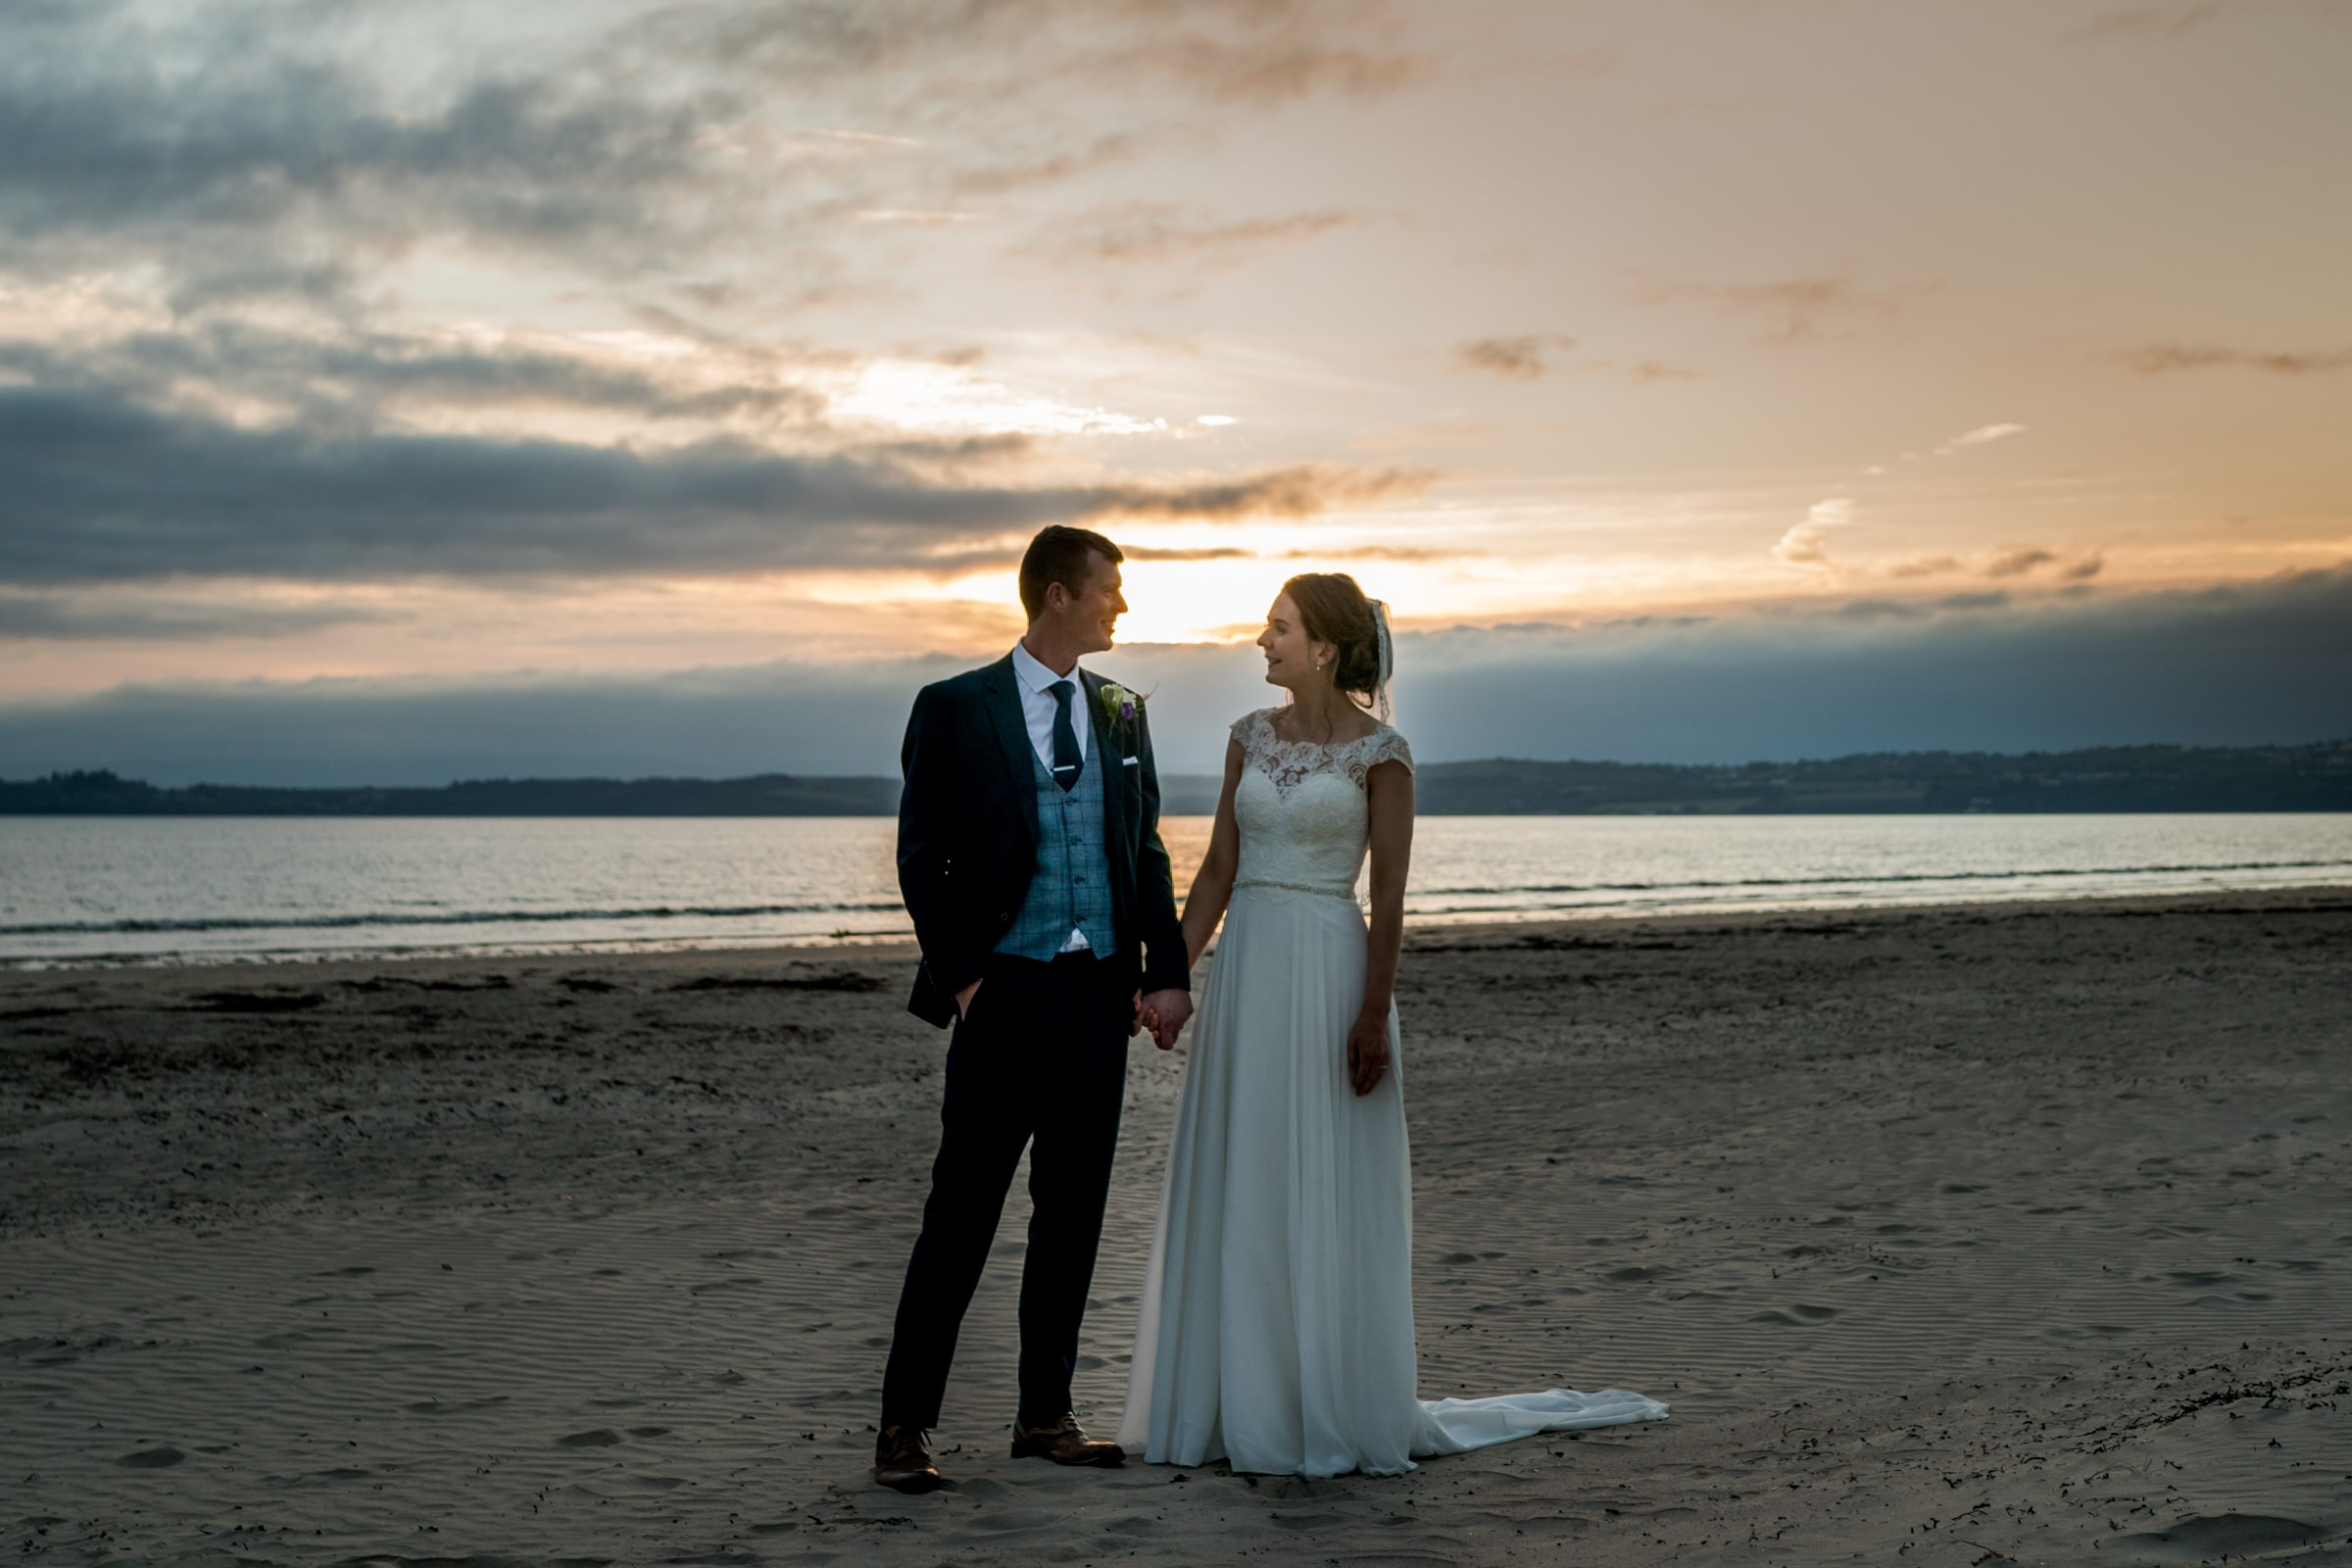 wedding photographer Donegal bride and groom on a beach at sunset.